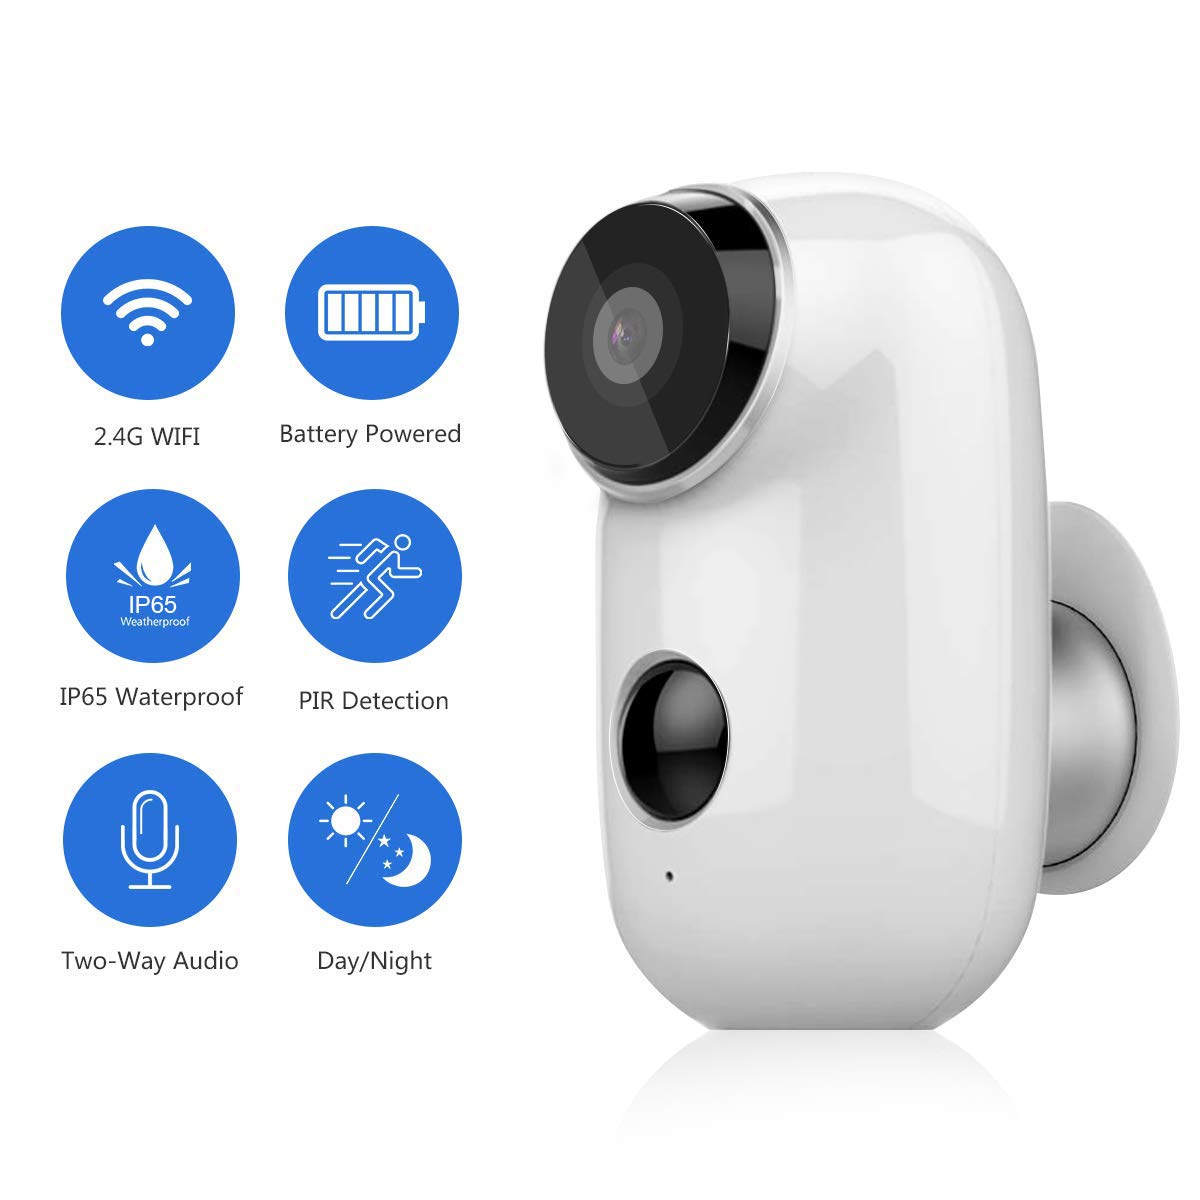 Wireless Security Camera HD 1080P Abowone Rechargeable Battery Powered Camera WIFI IP Camera Wire-Free Waterproof Indoor/Outdoor Security Camera Two Way Audio PIR Sensor/Body Detection HD Night Vision by Abowone